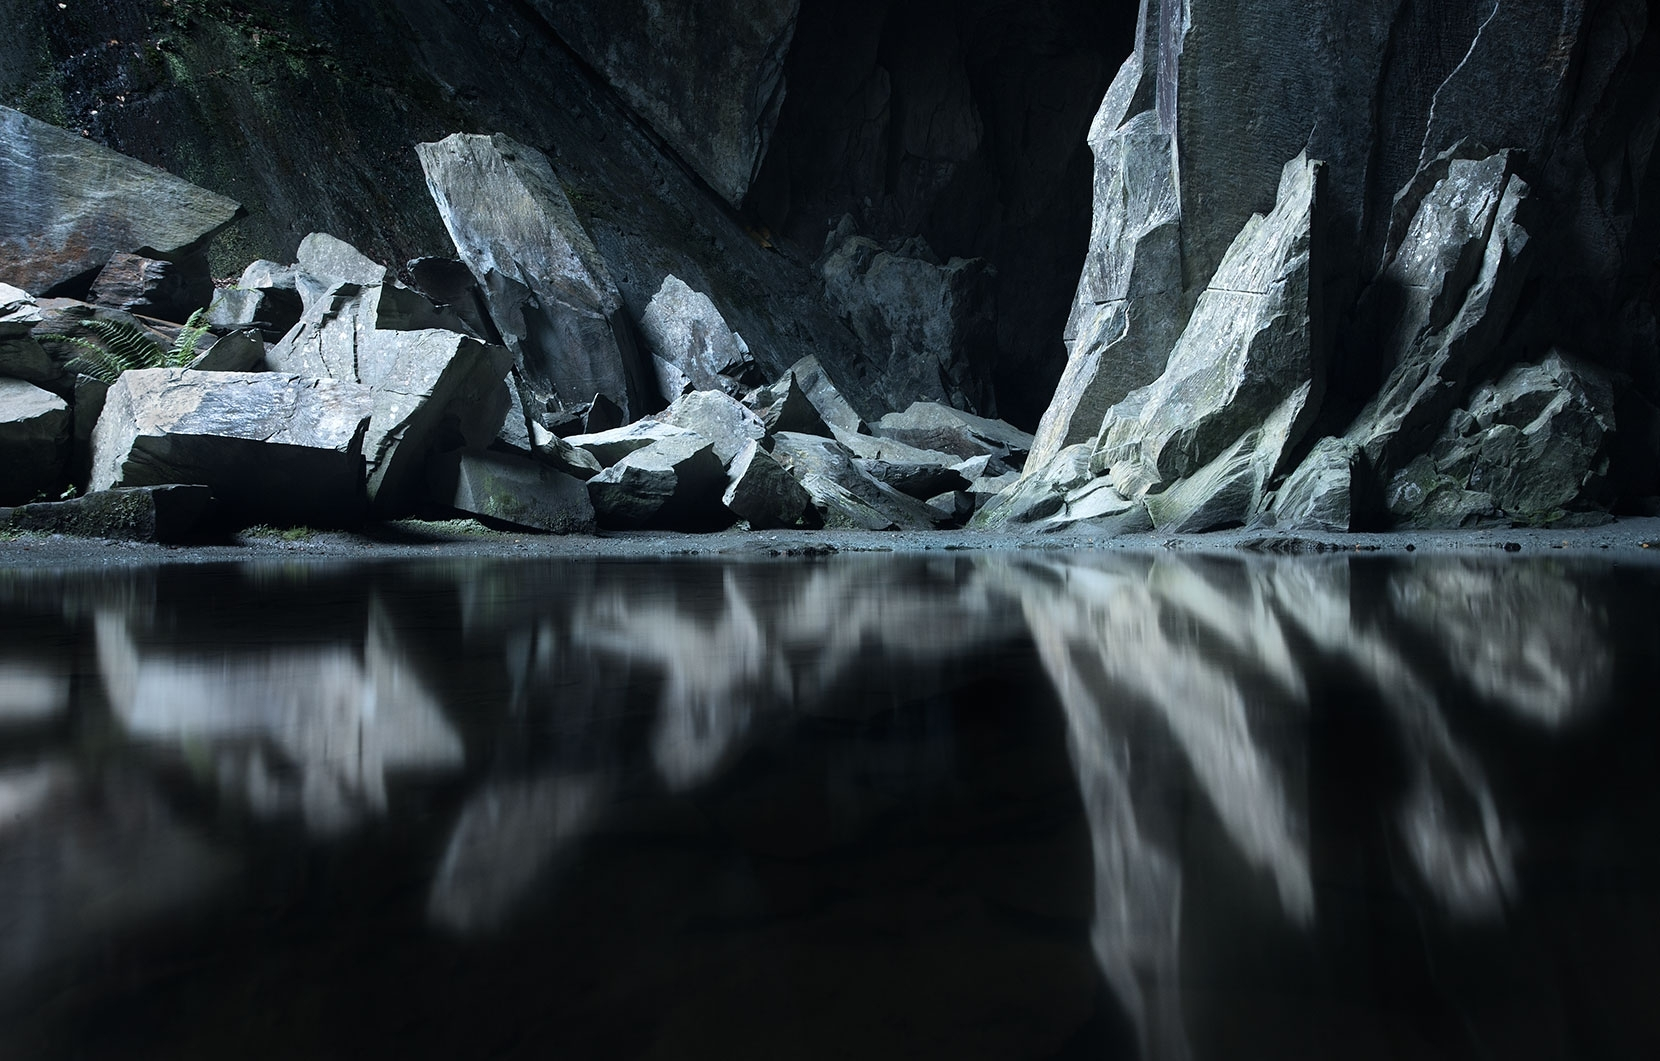 The magic of Cathedral Quarry - great light and subject matter